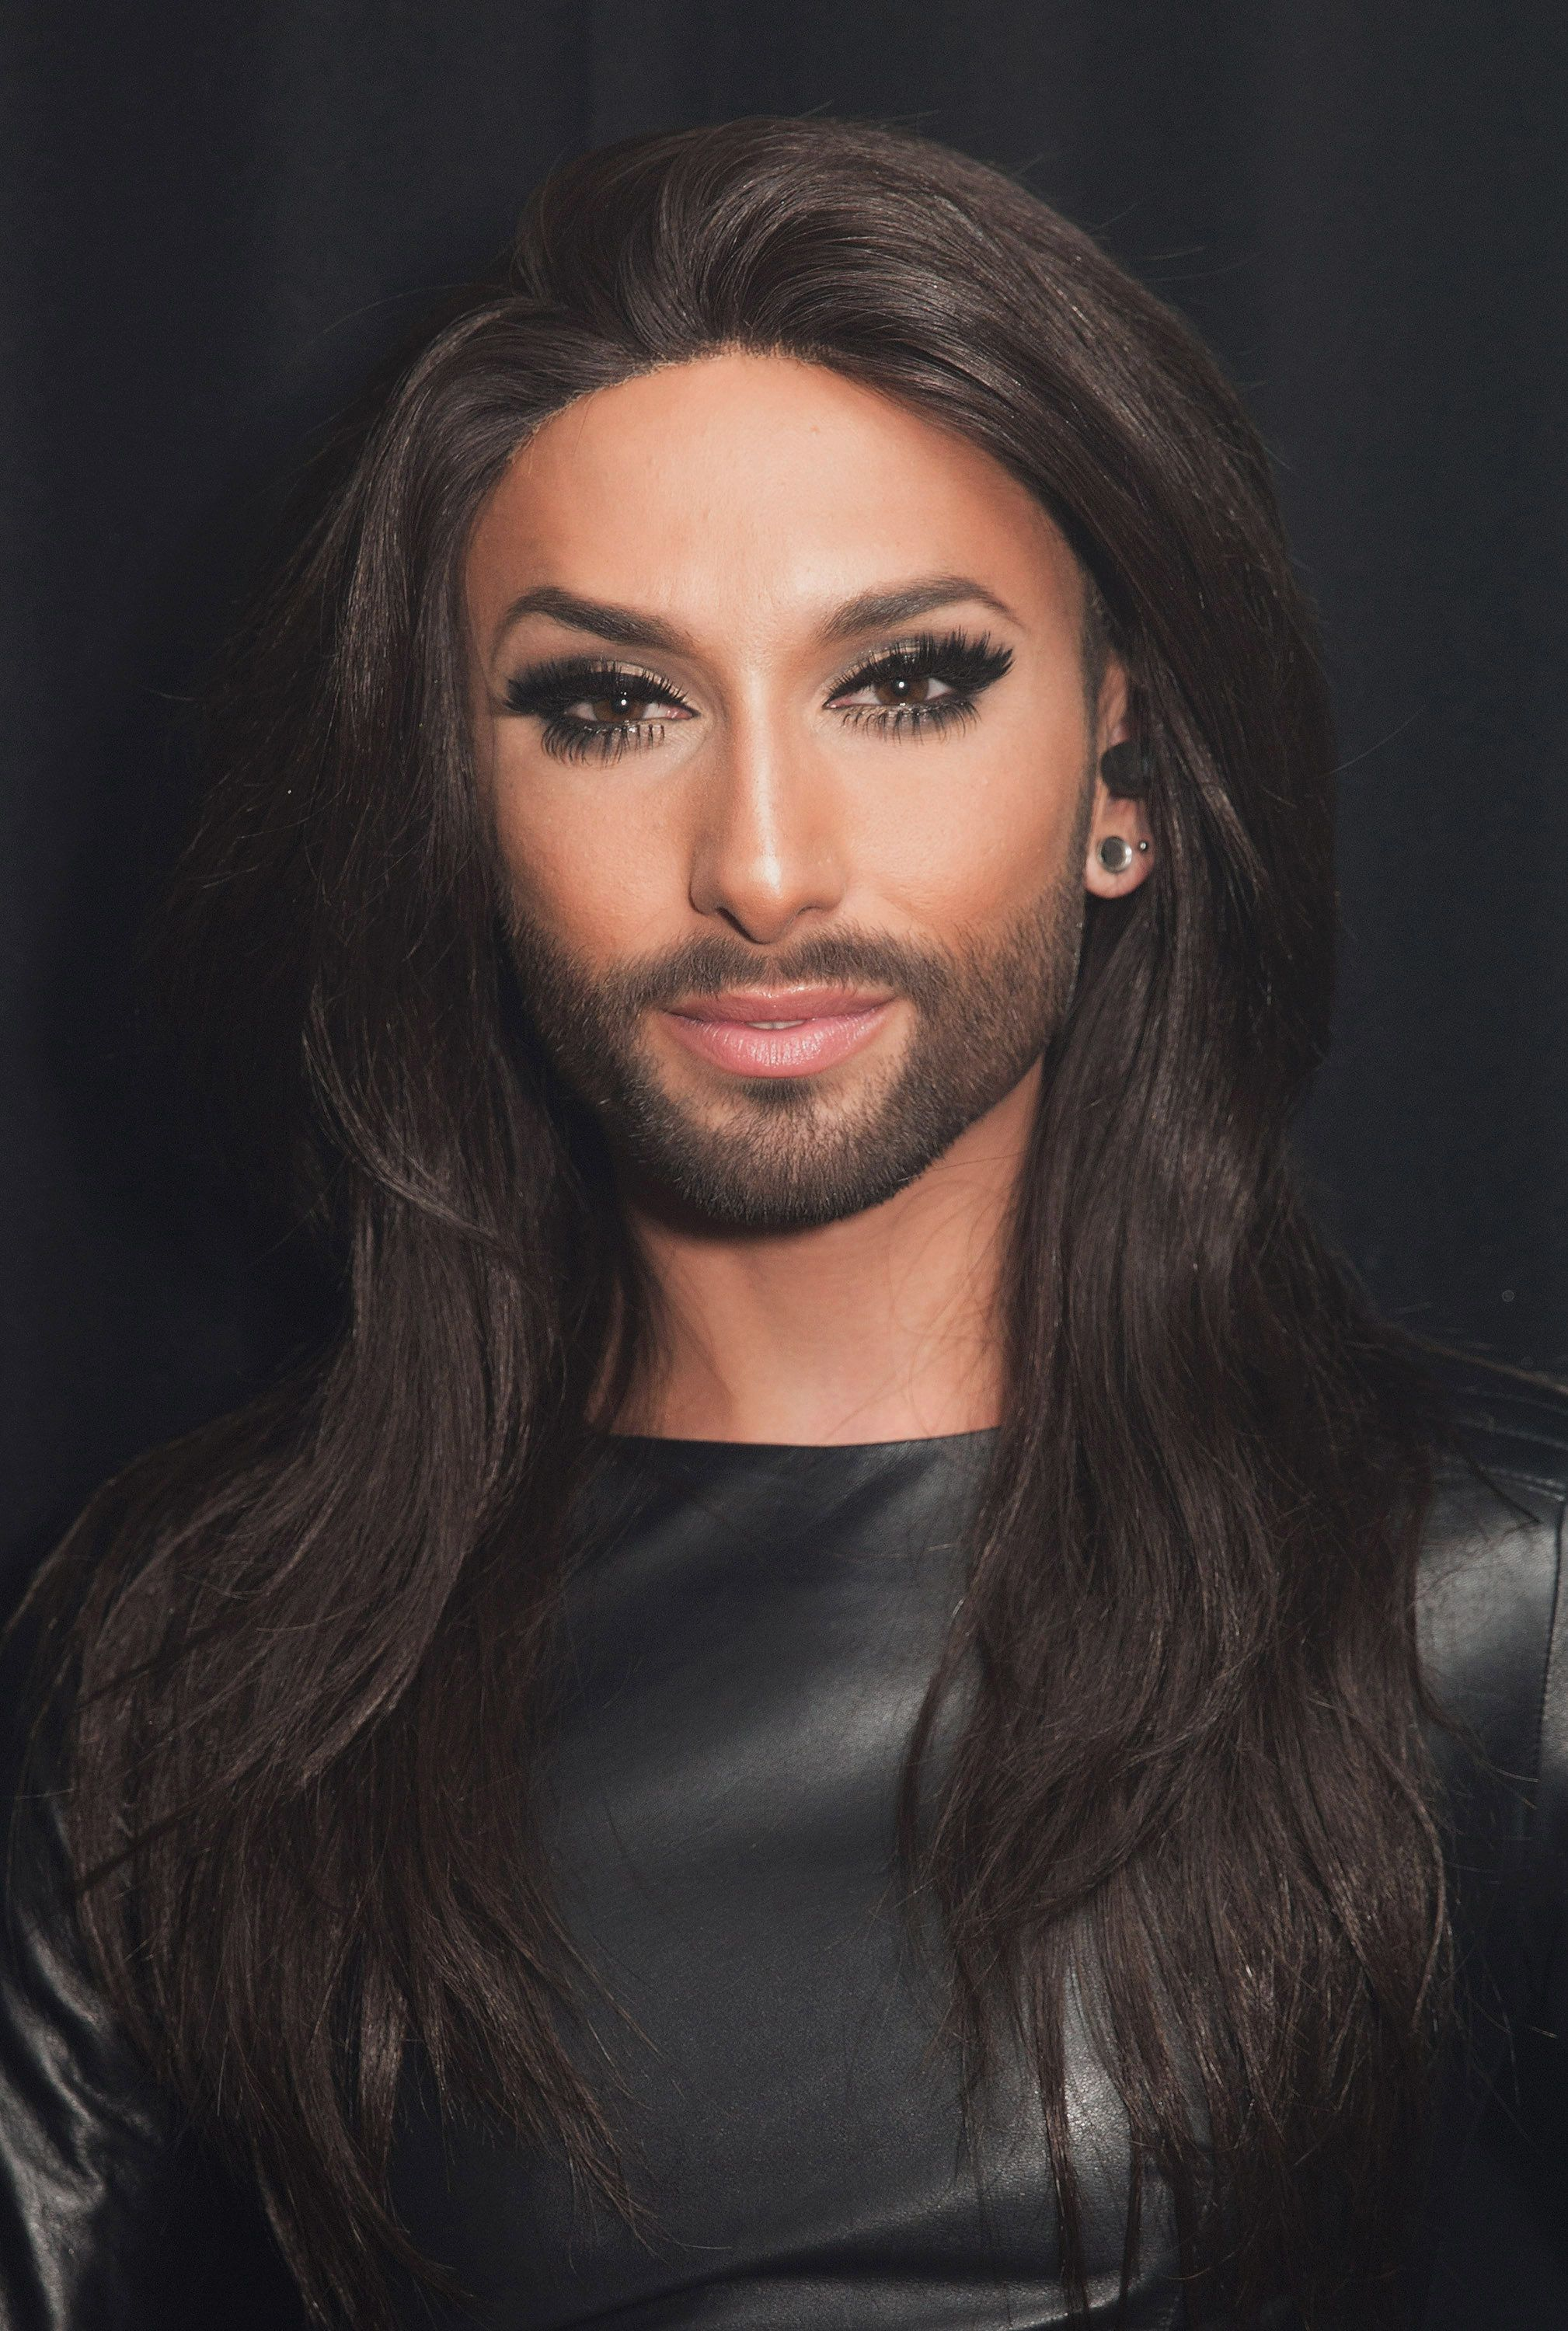 Conchita Wurst Reveals She's HIV Positive After Eurovision Winner's Ex-Boyfriend Threatens To Go